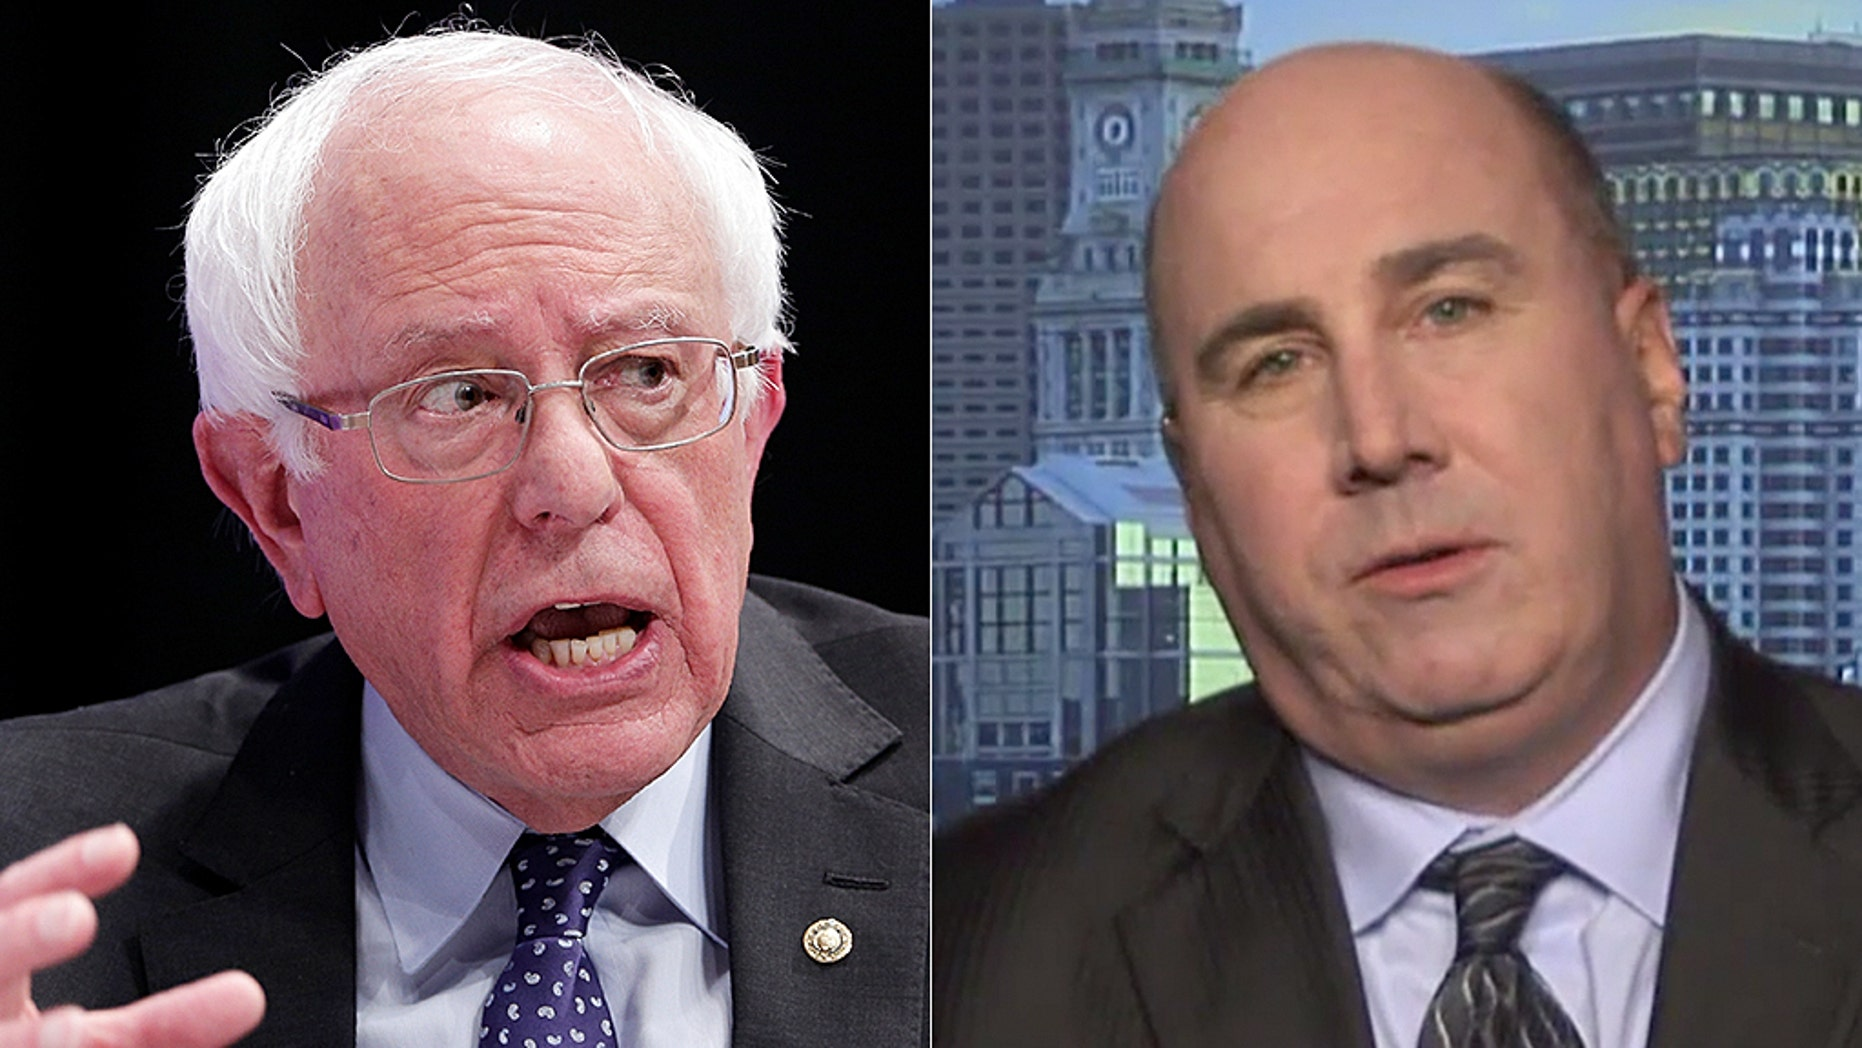 Daniel Linskey (right), former superintendent-in-chief of the Boston Police Department, explained his reaction to Bernie Sanders' comments about giving felons the right to vote.